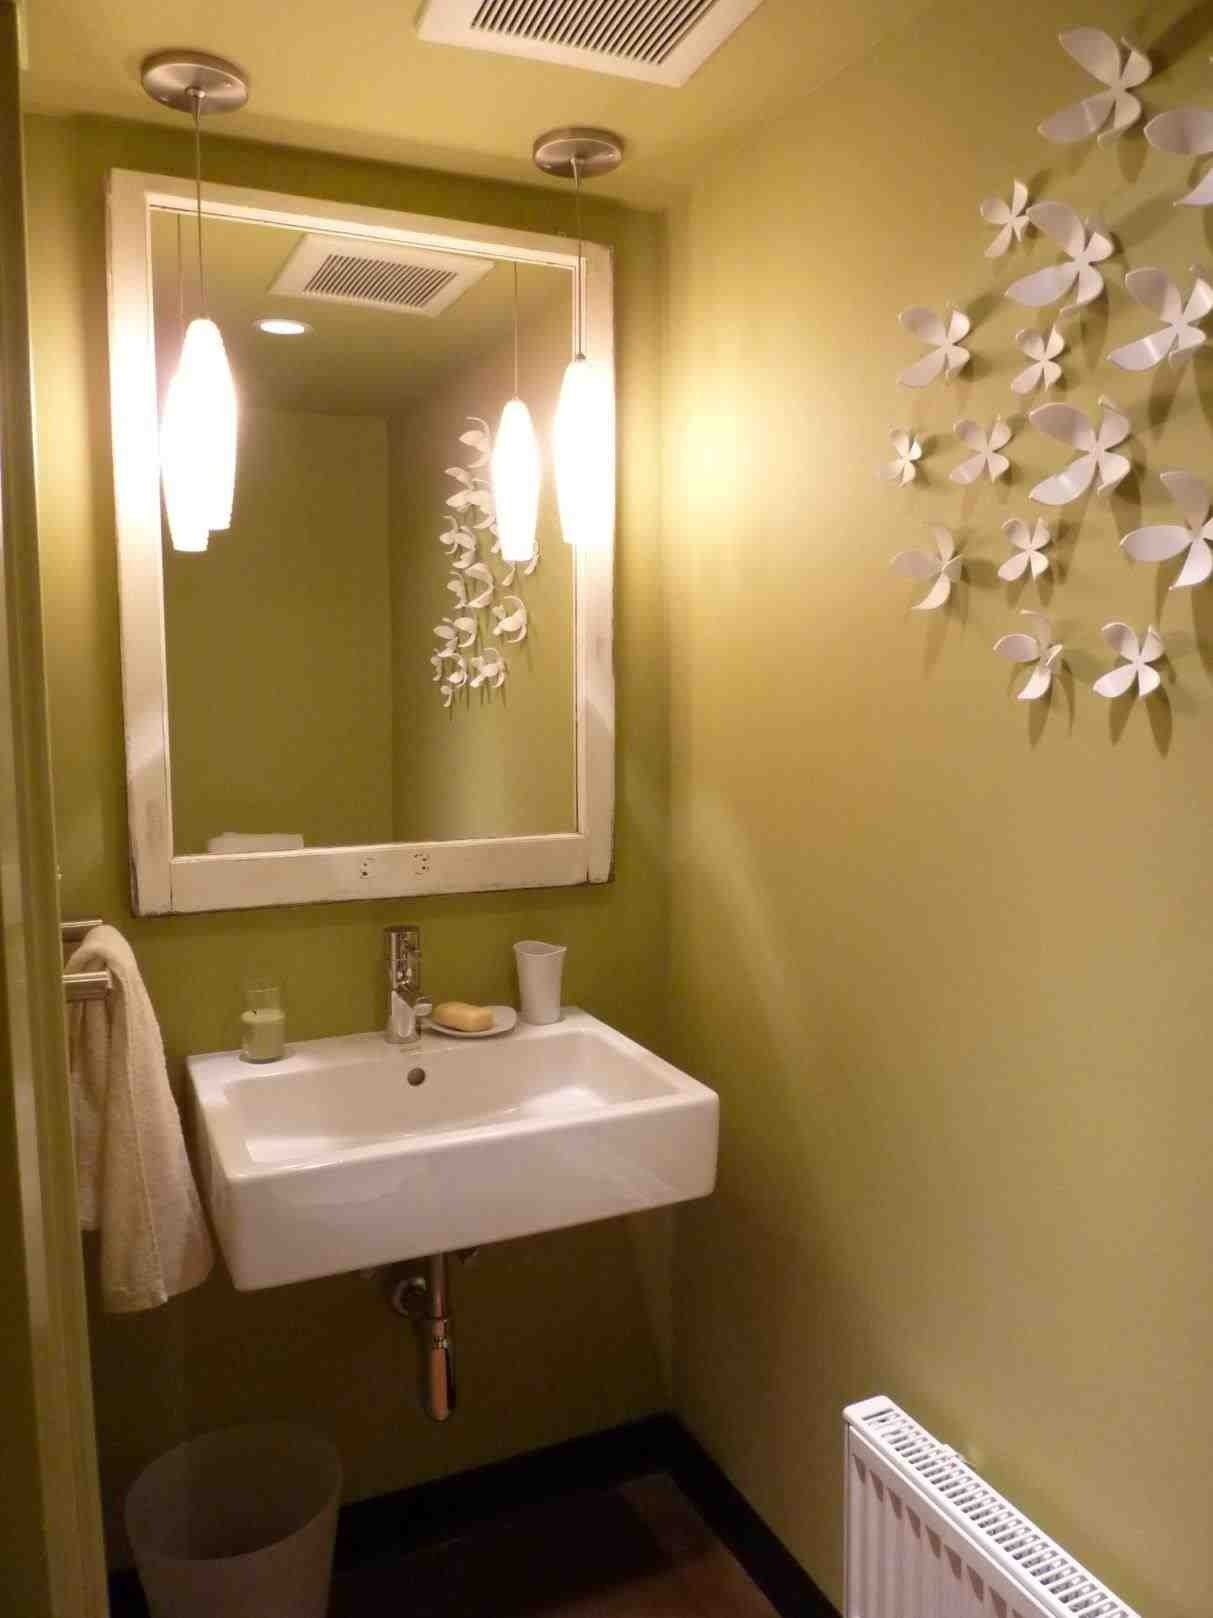 10 Ideal Small Powder Room Decorating Ideas the images collection of interior small powder room decor powder 2020